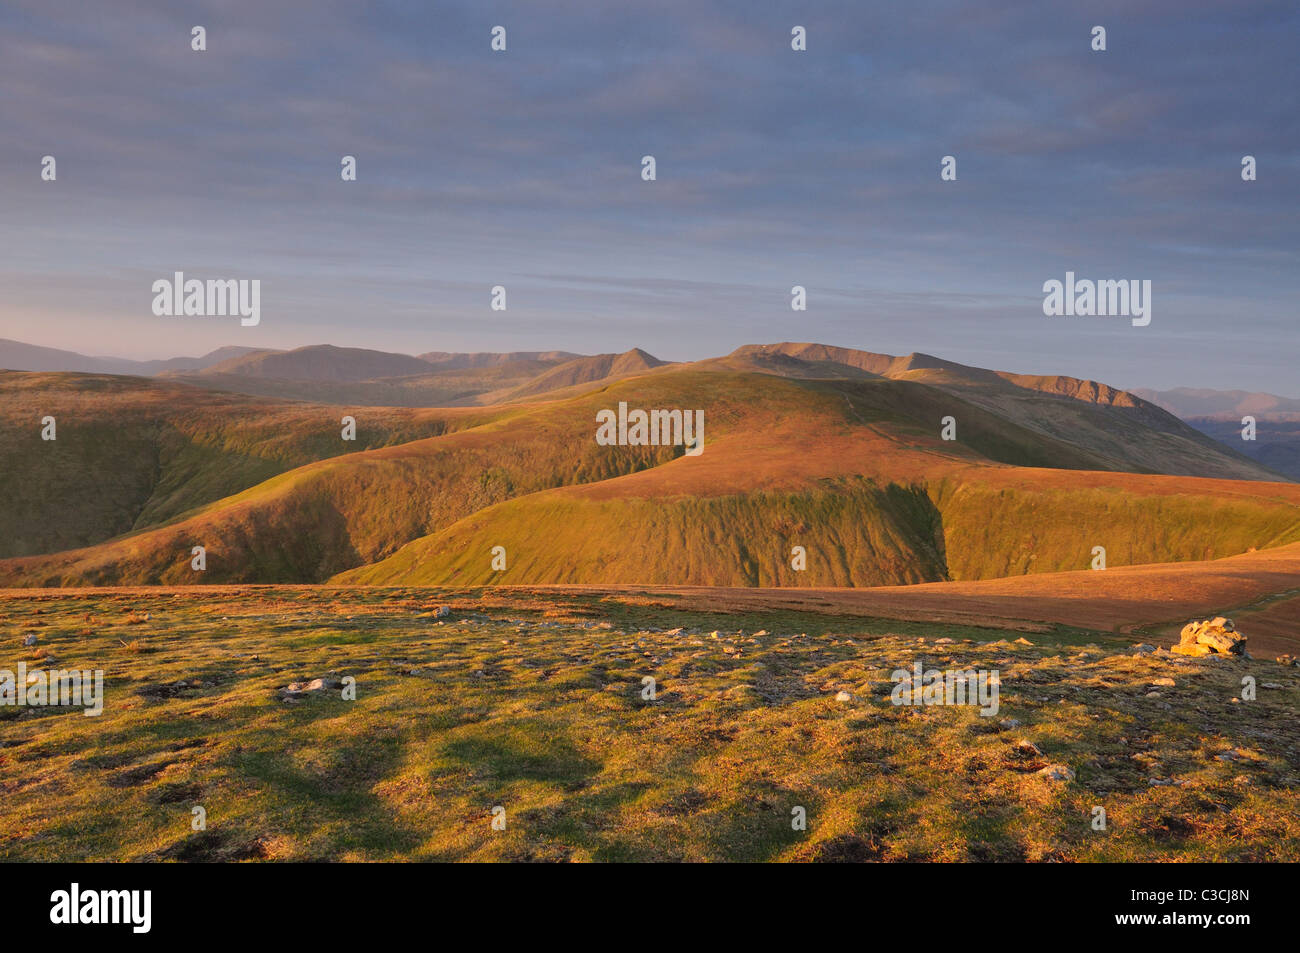 Dawn light on Stybarrow Dodd and Helvellyn, taken from Great Dodd in the English Lake District - Stock Image